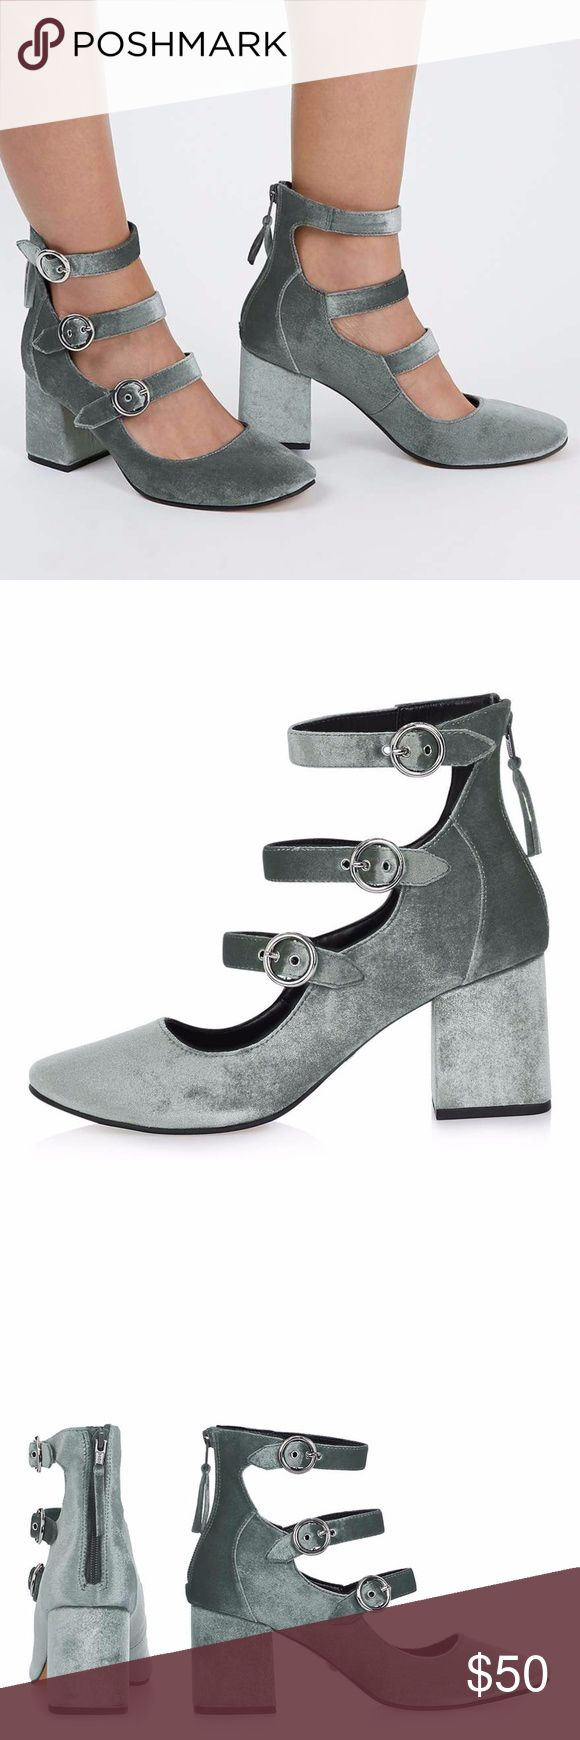 """Topshop JOJO Multi Buckle Shoes 39 8M Get luxe with your footwear in these unique grey velvet multi buckle round toe shoes with zip fastening. A stylish way to step up your casual outfit. Heel height 3.5"""" approx. 100% Textile. Specialist clean only. Colour: GREY Product Code: 32J07KGRY Topshop Shoes Heels"""